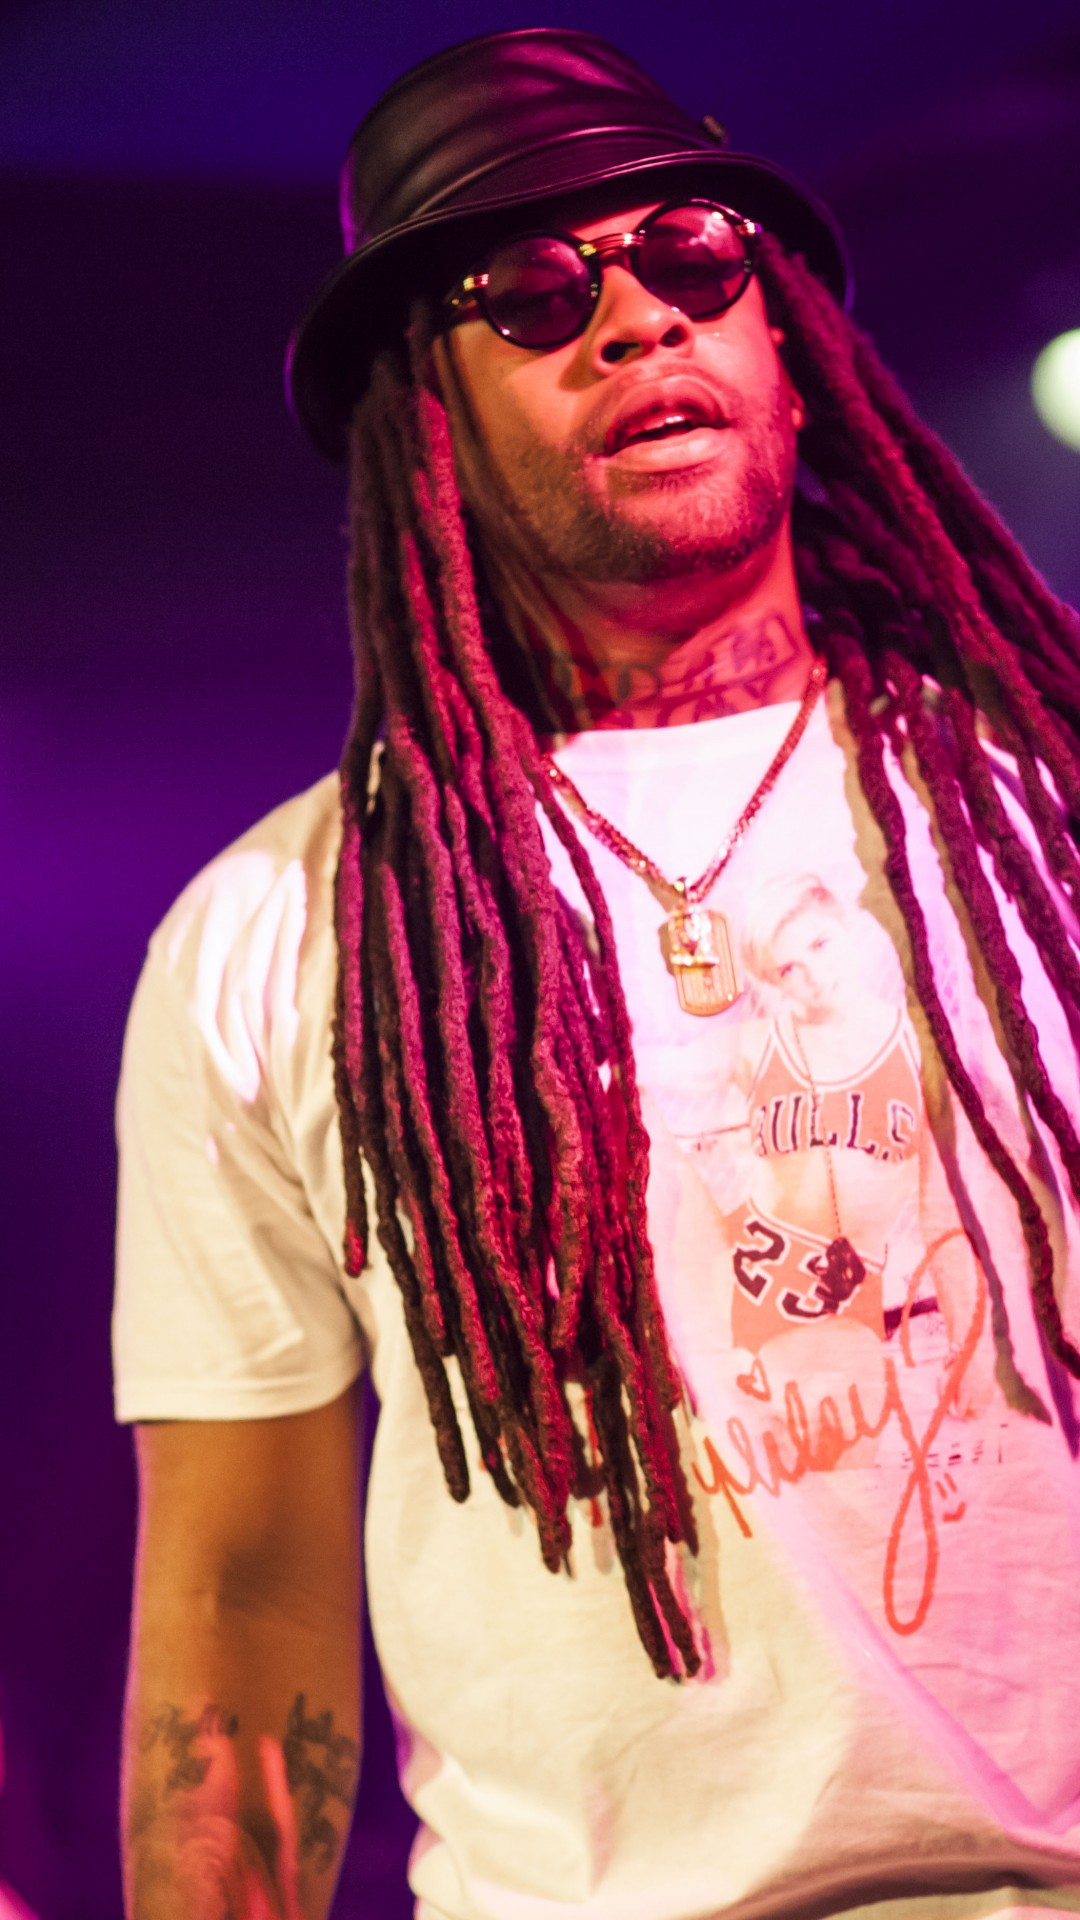 Wallpaper ty dolla sign top music artist and bands tyrone william griffin celebrities 6674 - Ty dolla sign hd wallpaper ...